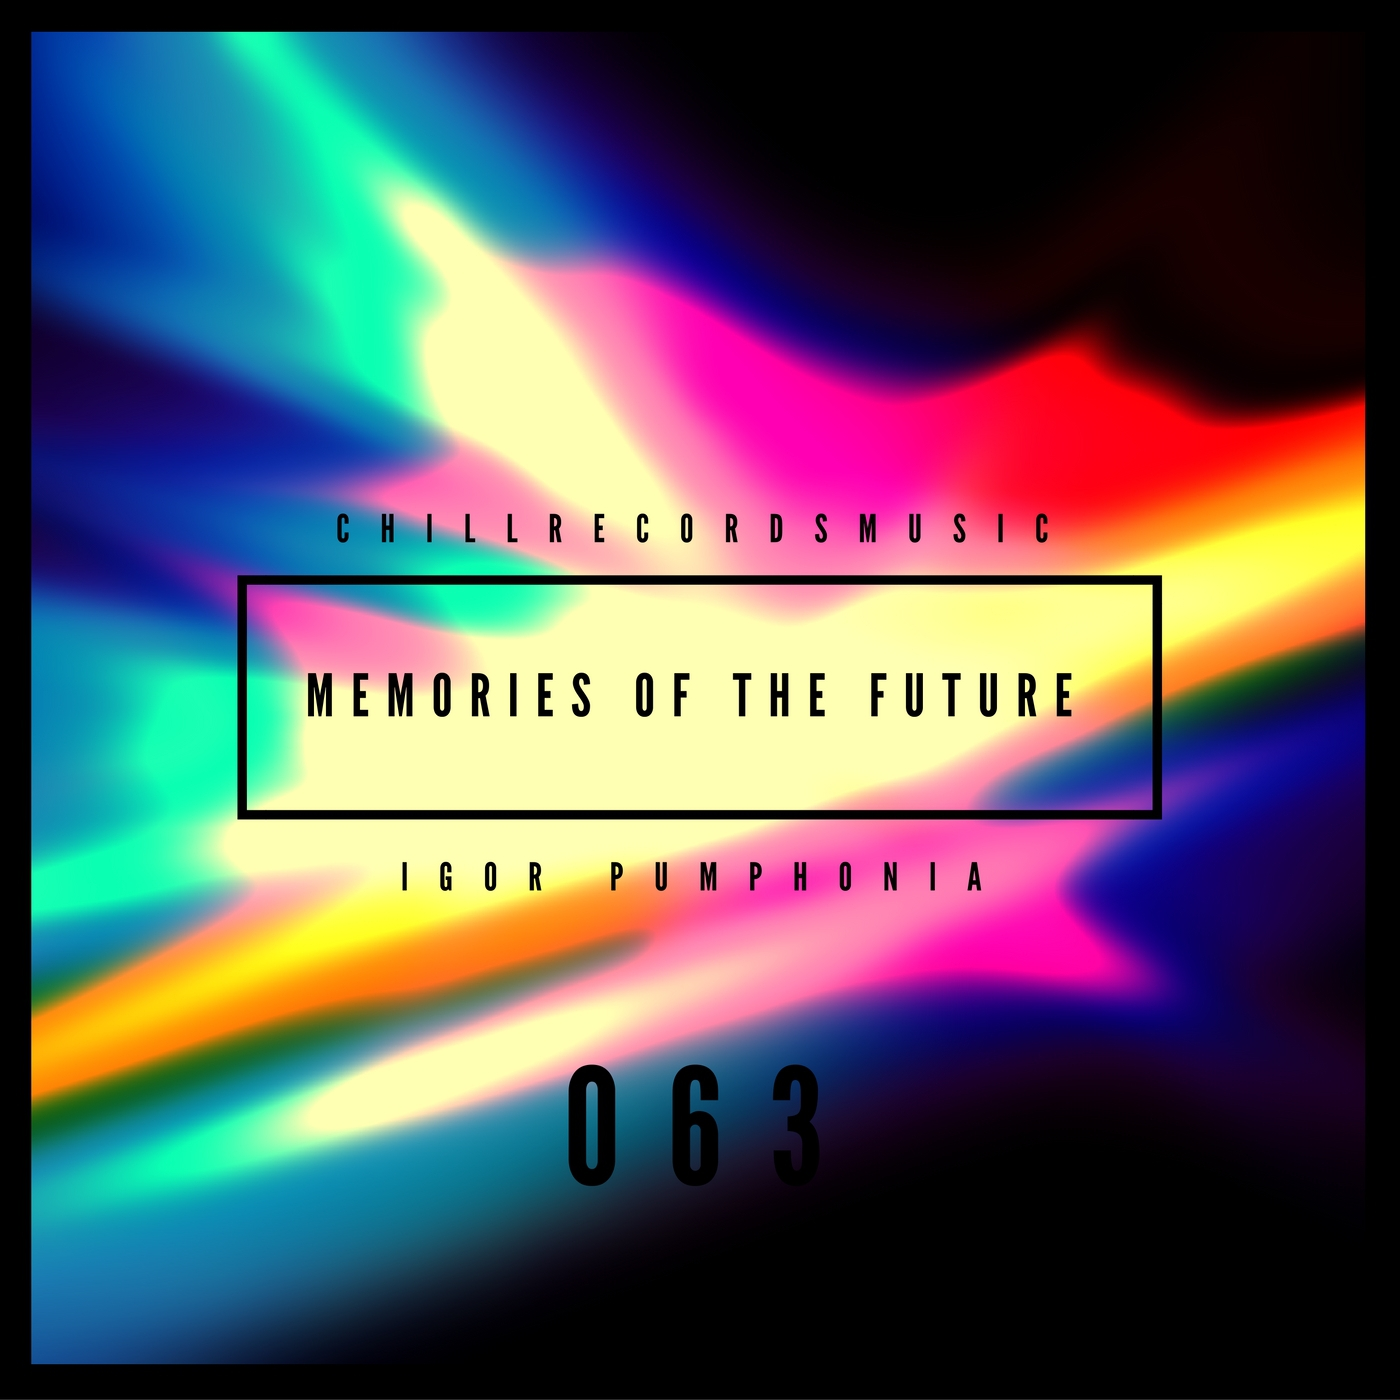 Igor Pumphonia - Memories Of The Future (Original Mix)